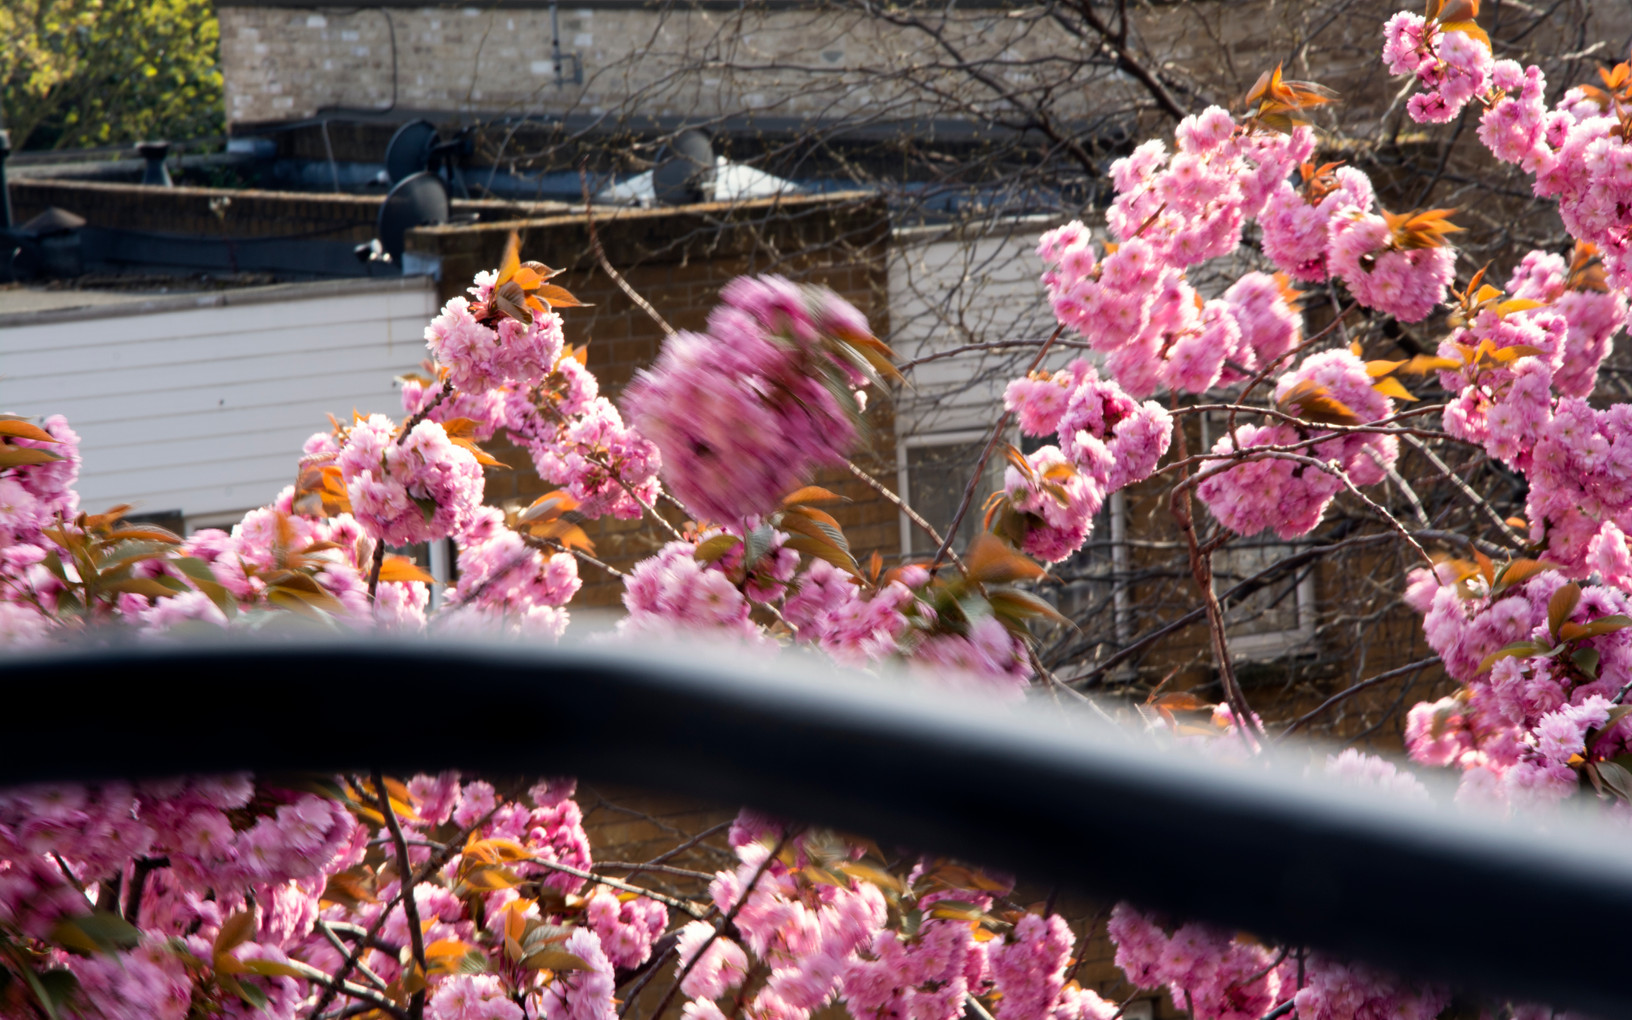 Blossoms in the wind | London, March 2020.